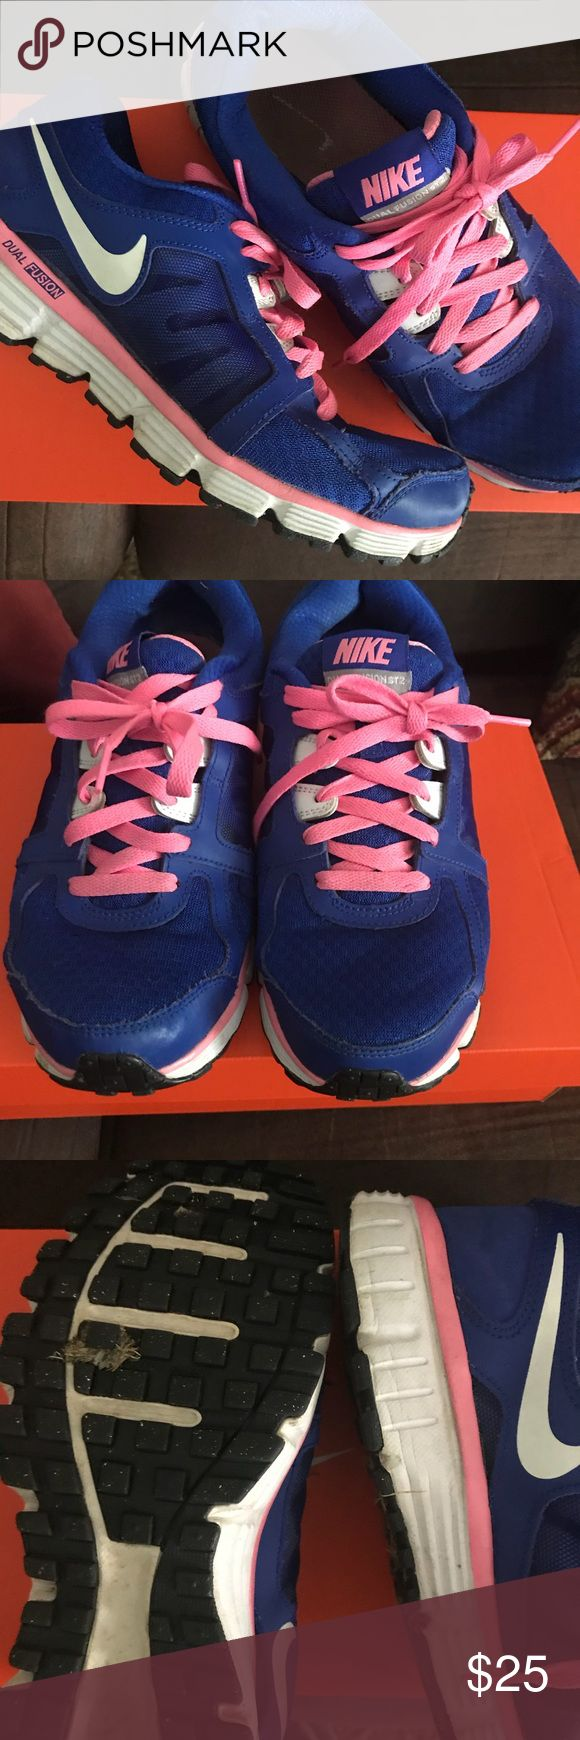 Nike dual fusion sneakers Pre-loved but still in good shape. Shows some sign of wear but still a lot of life left. Awesome color combo royal blue and bubble gum pink adds a pop of fun to black workout wear Nike Shoes Sneakers